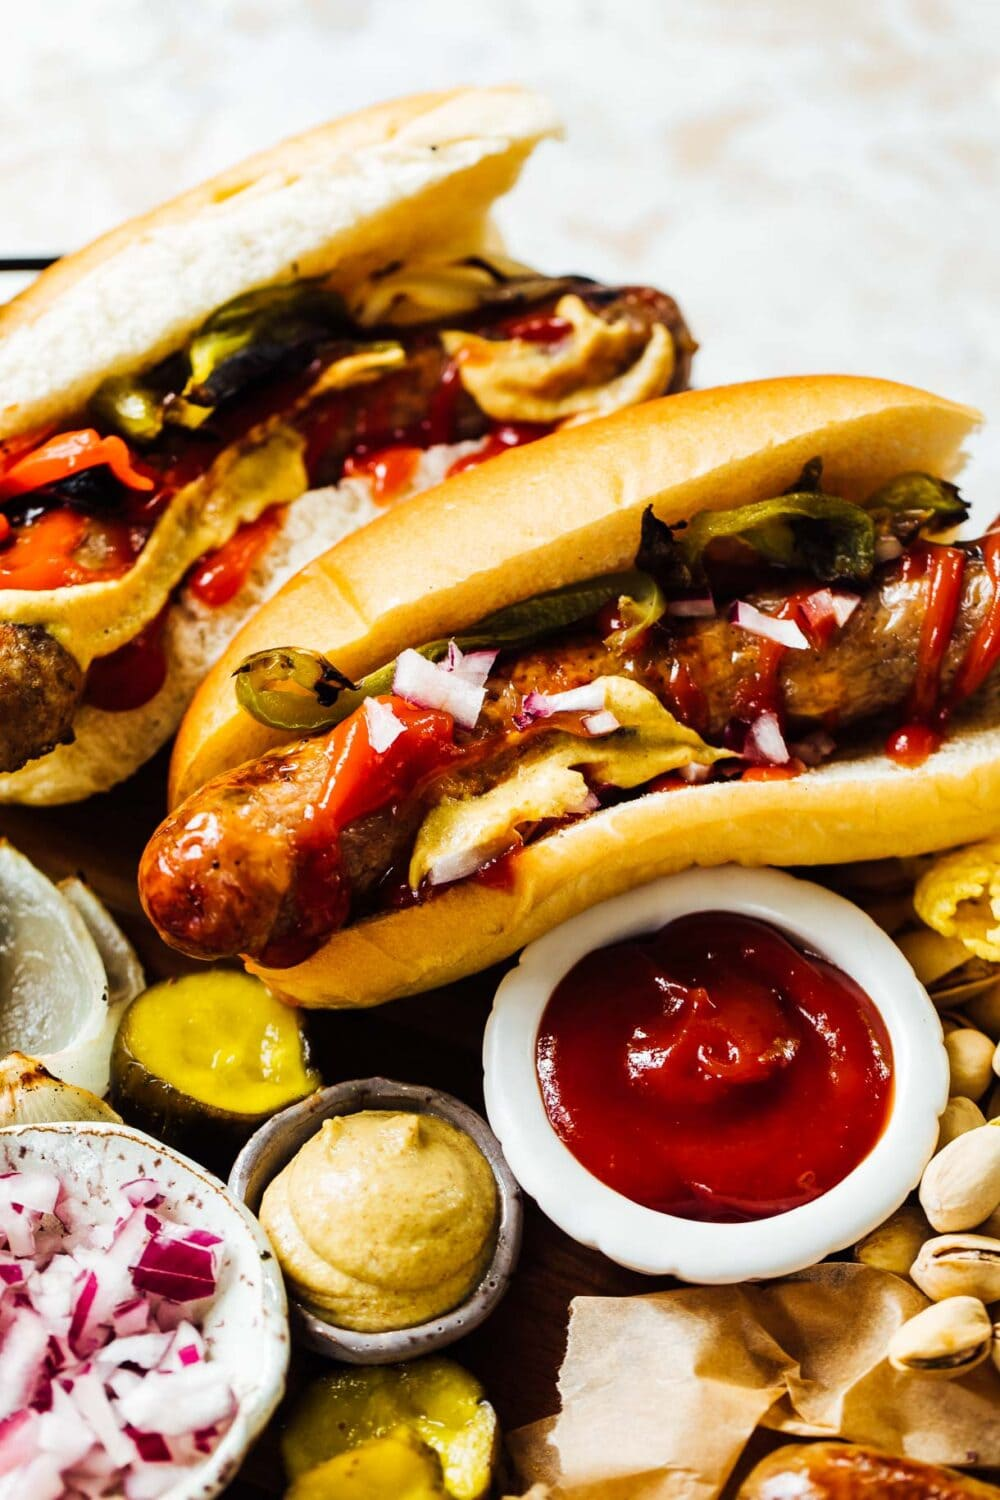 Grilled Brats in Buns with ketchup and mustard nearby